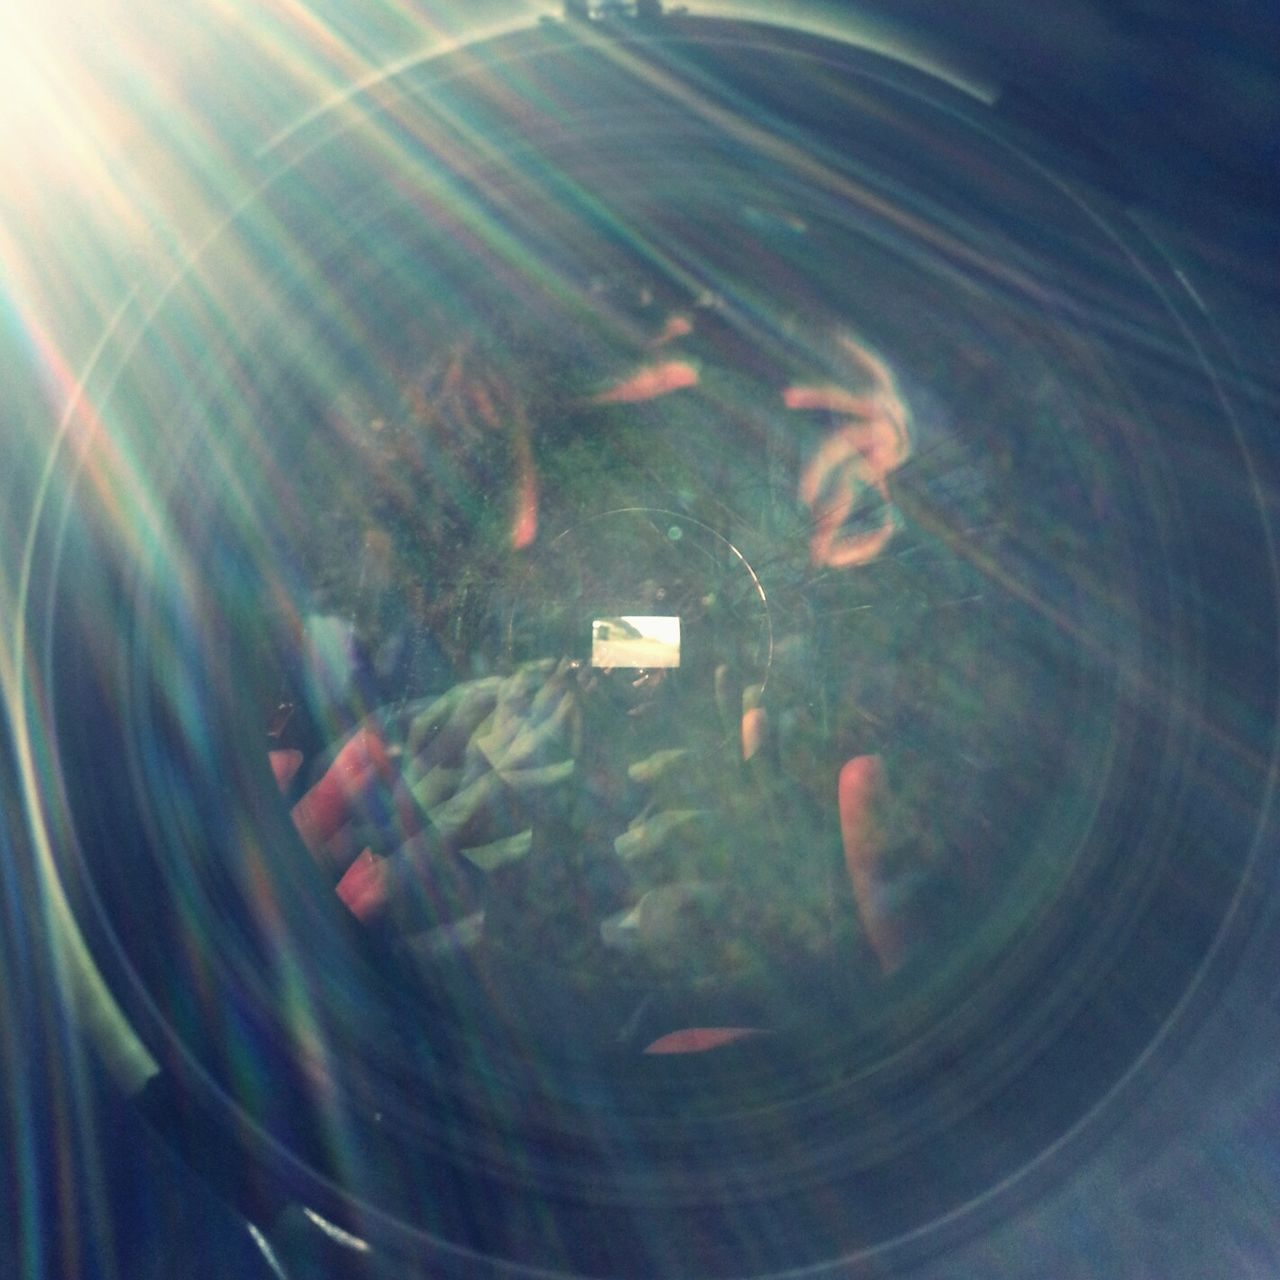 Lens Flare Len Camera Lens Circle Flare Light Photographer Reflection Mirror Mirror Lens